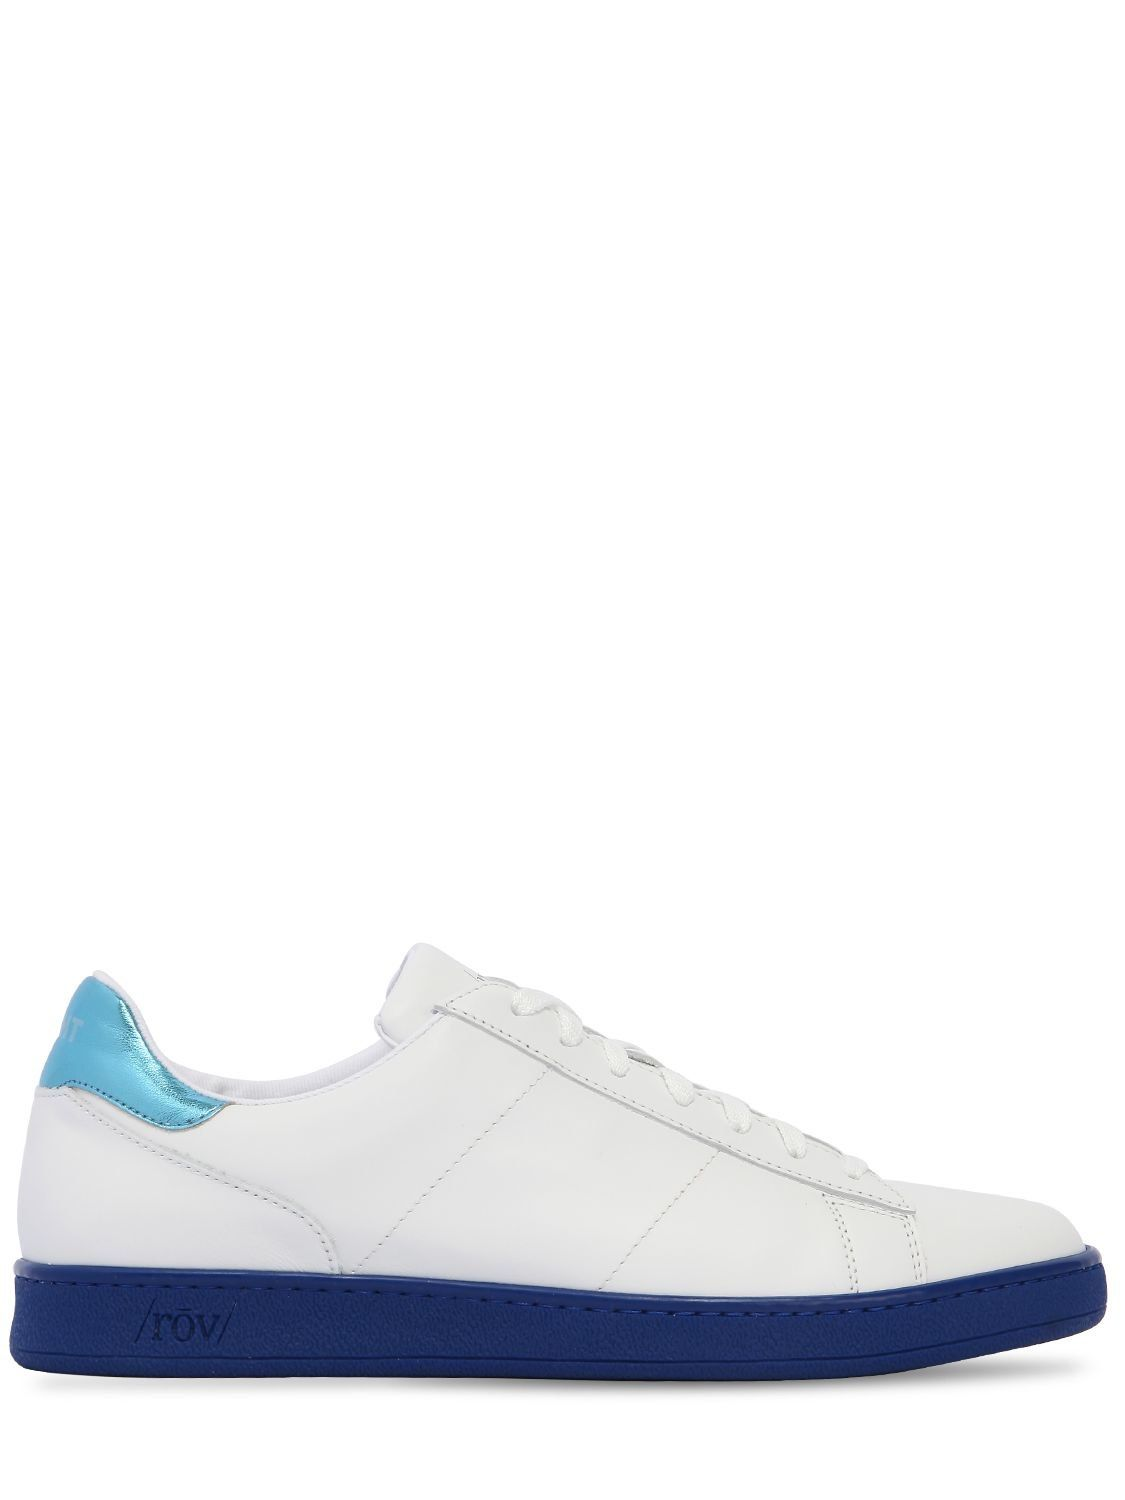 White and blue leather sneaker Rov 7iv0iKEl6